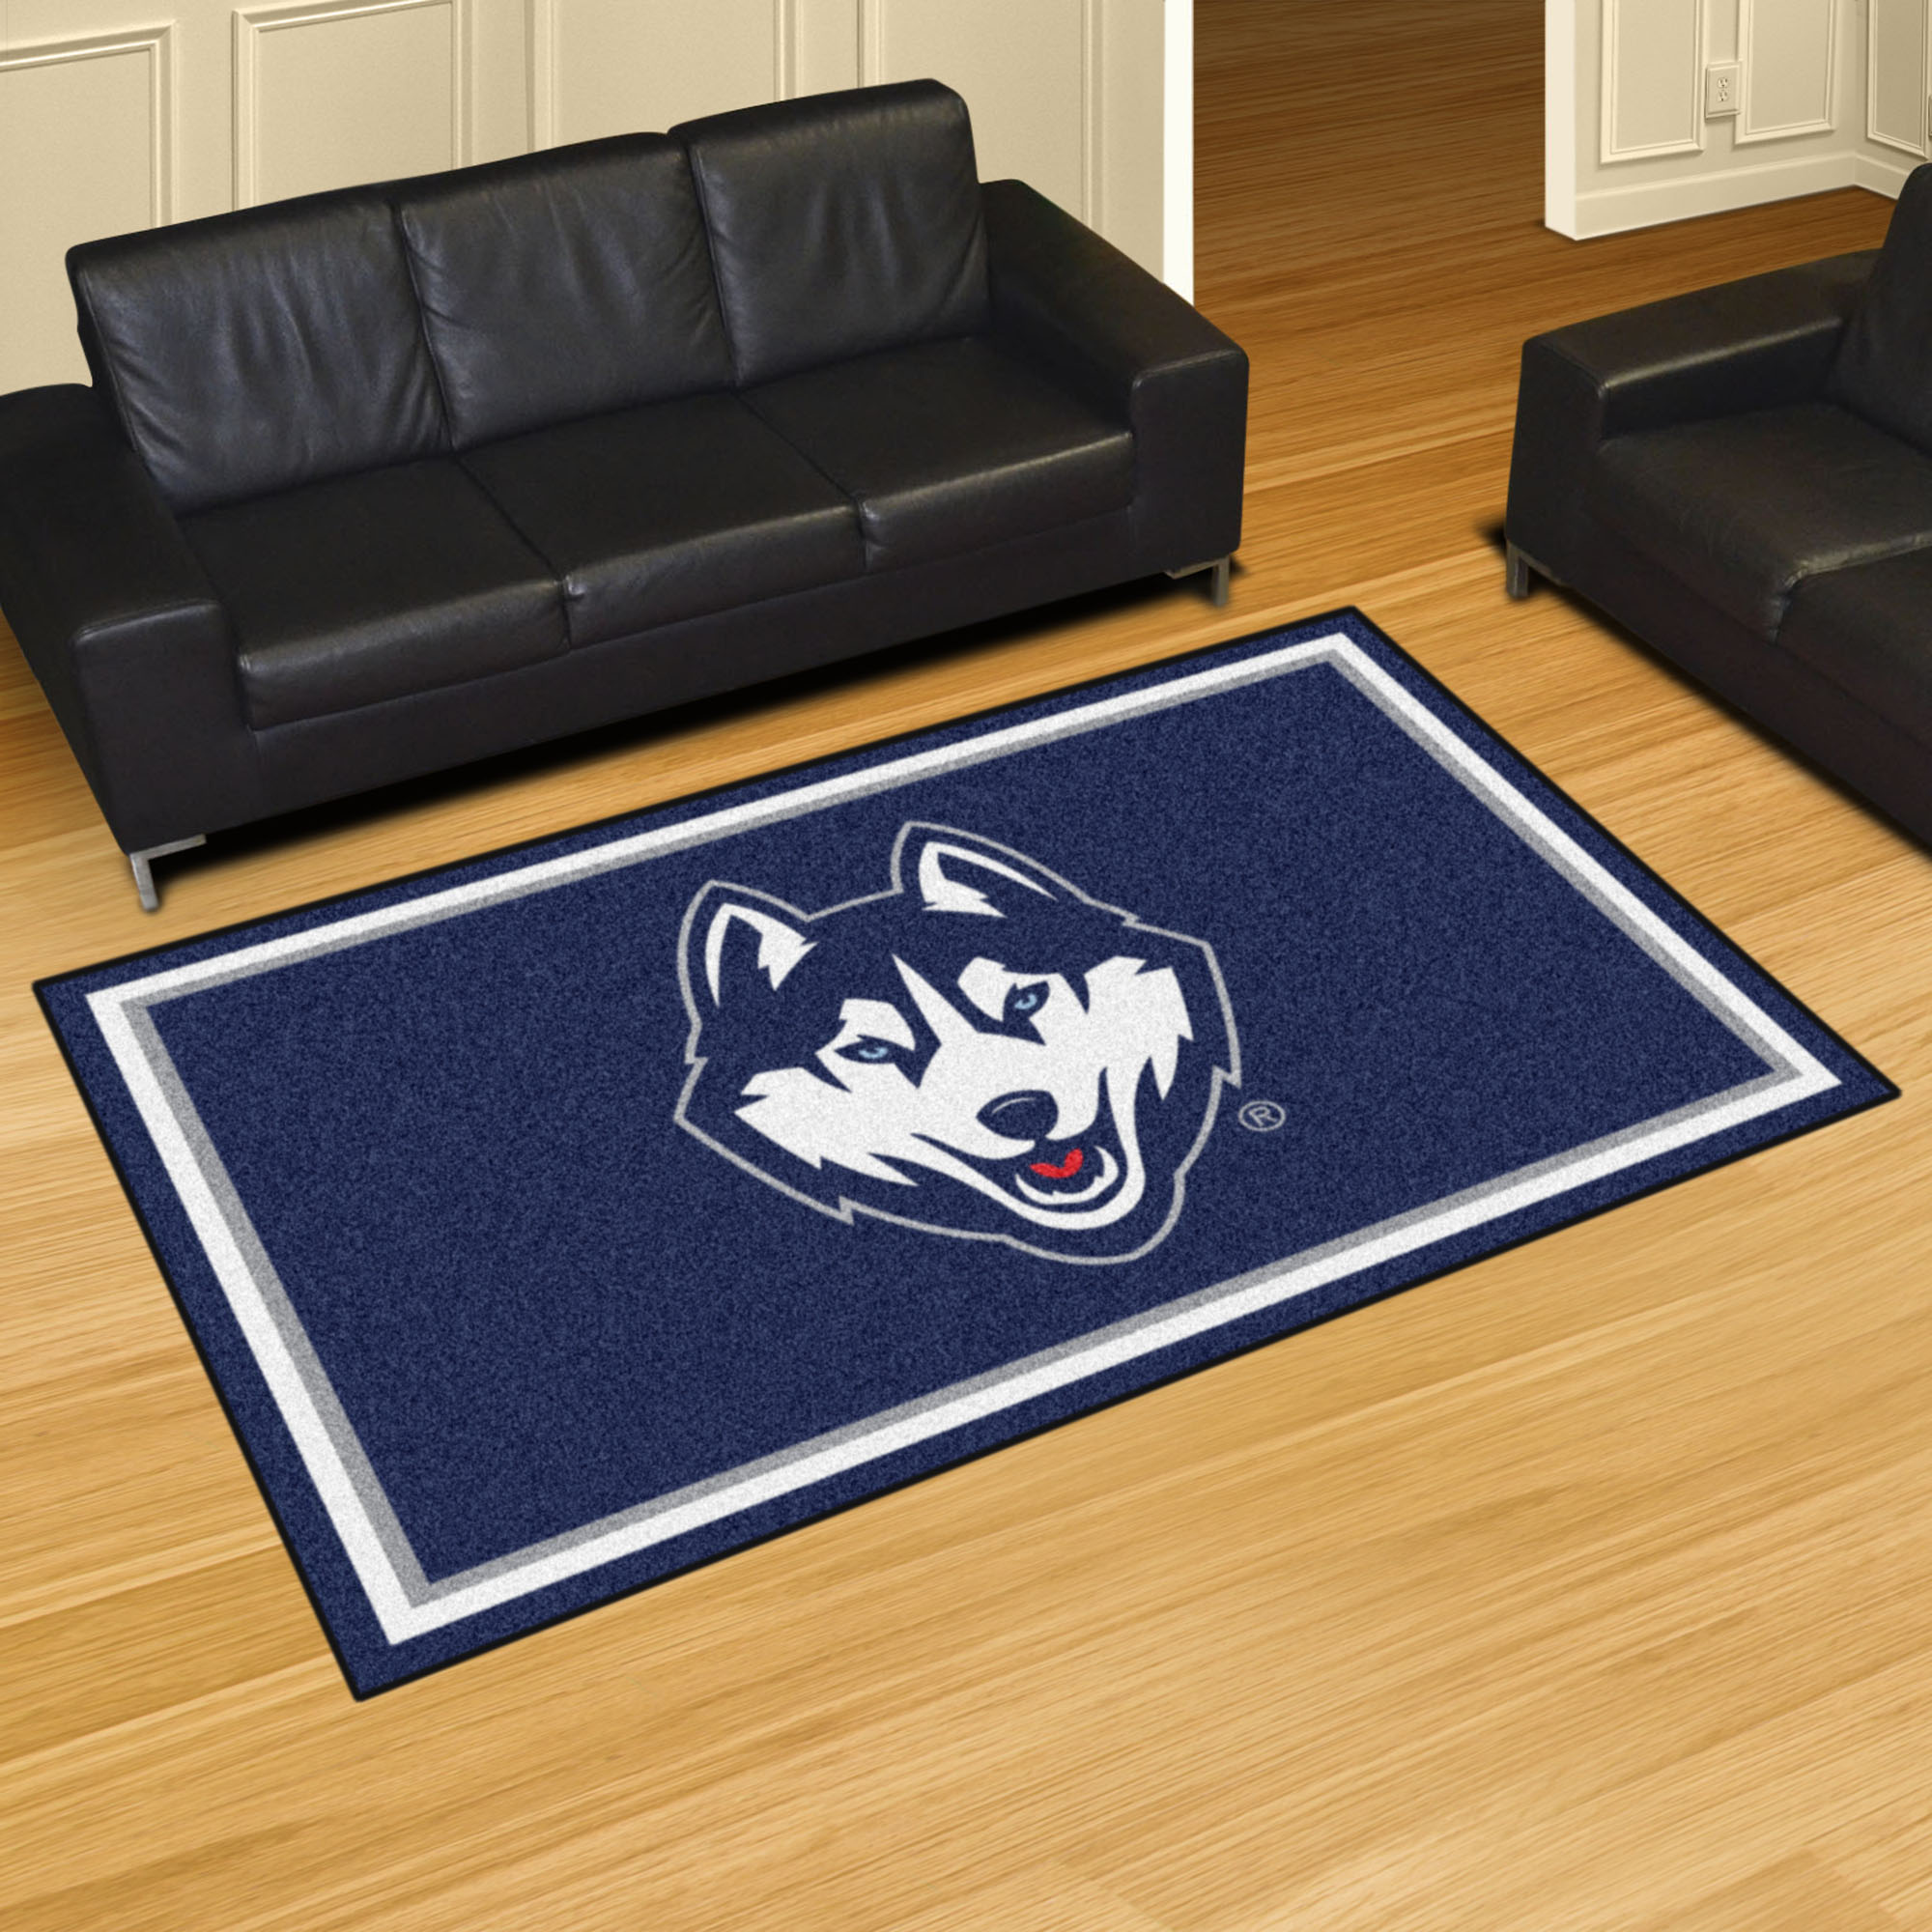 University of Connecticut Huskies Area Rug – 5 x 8